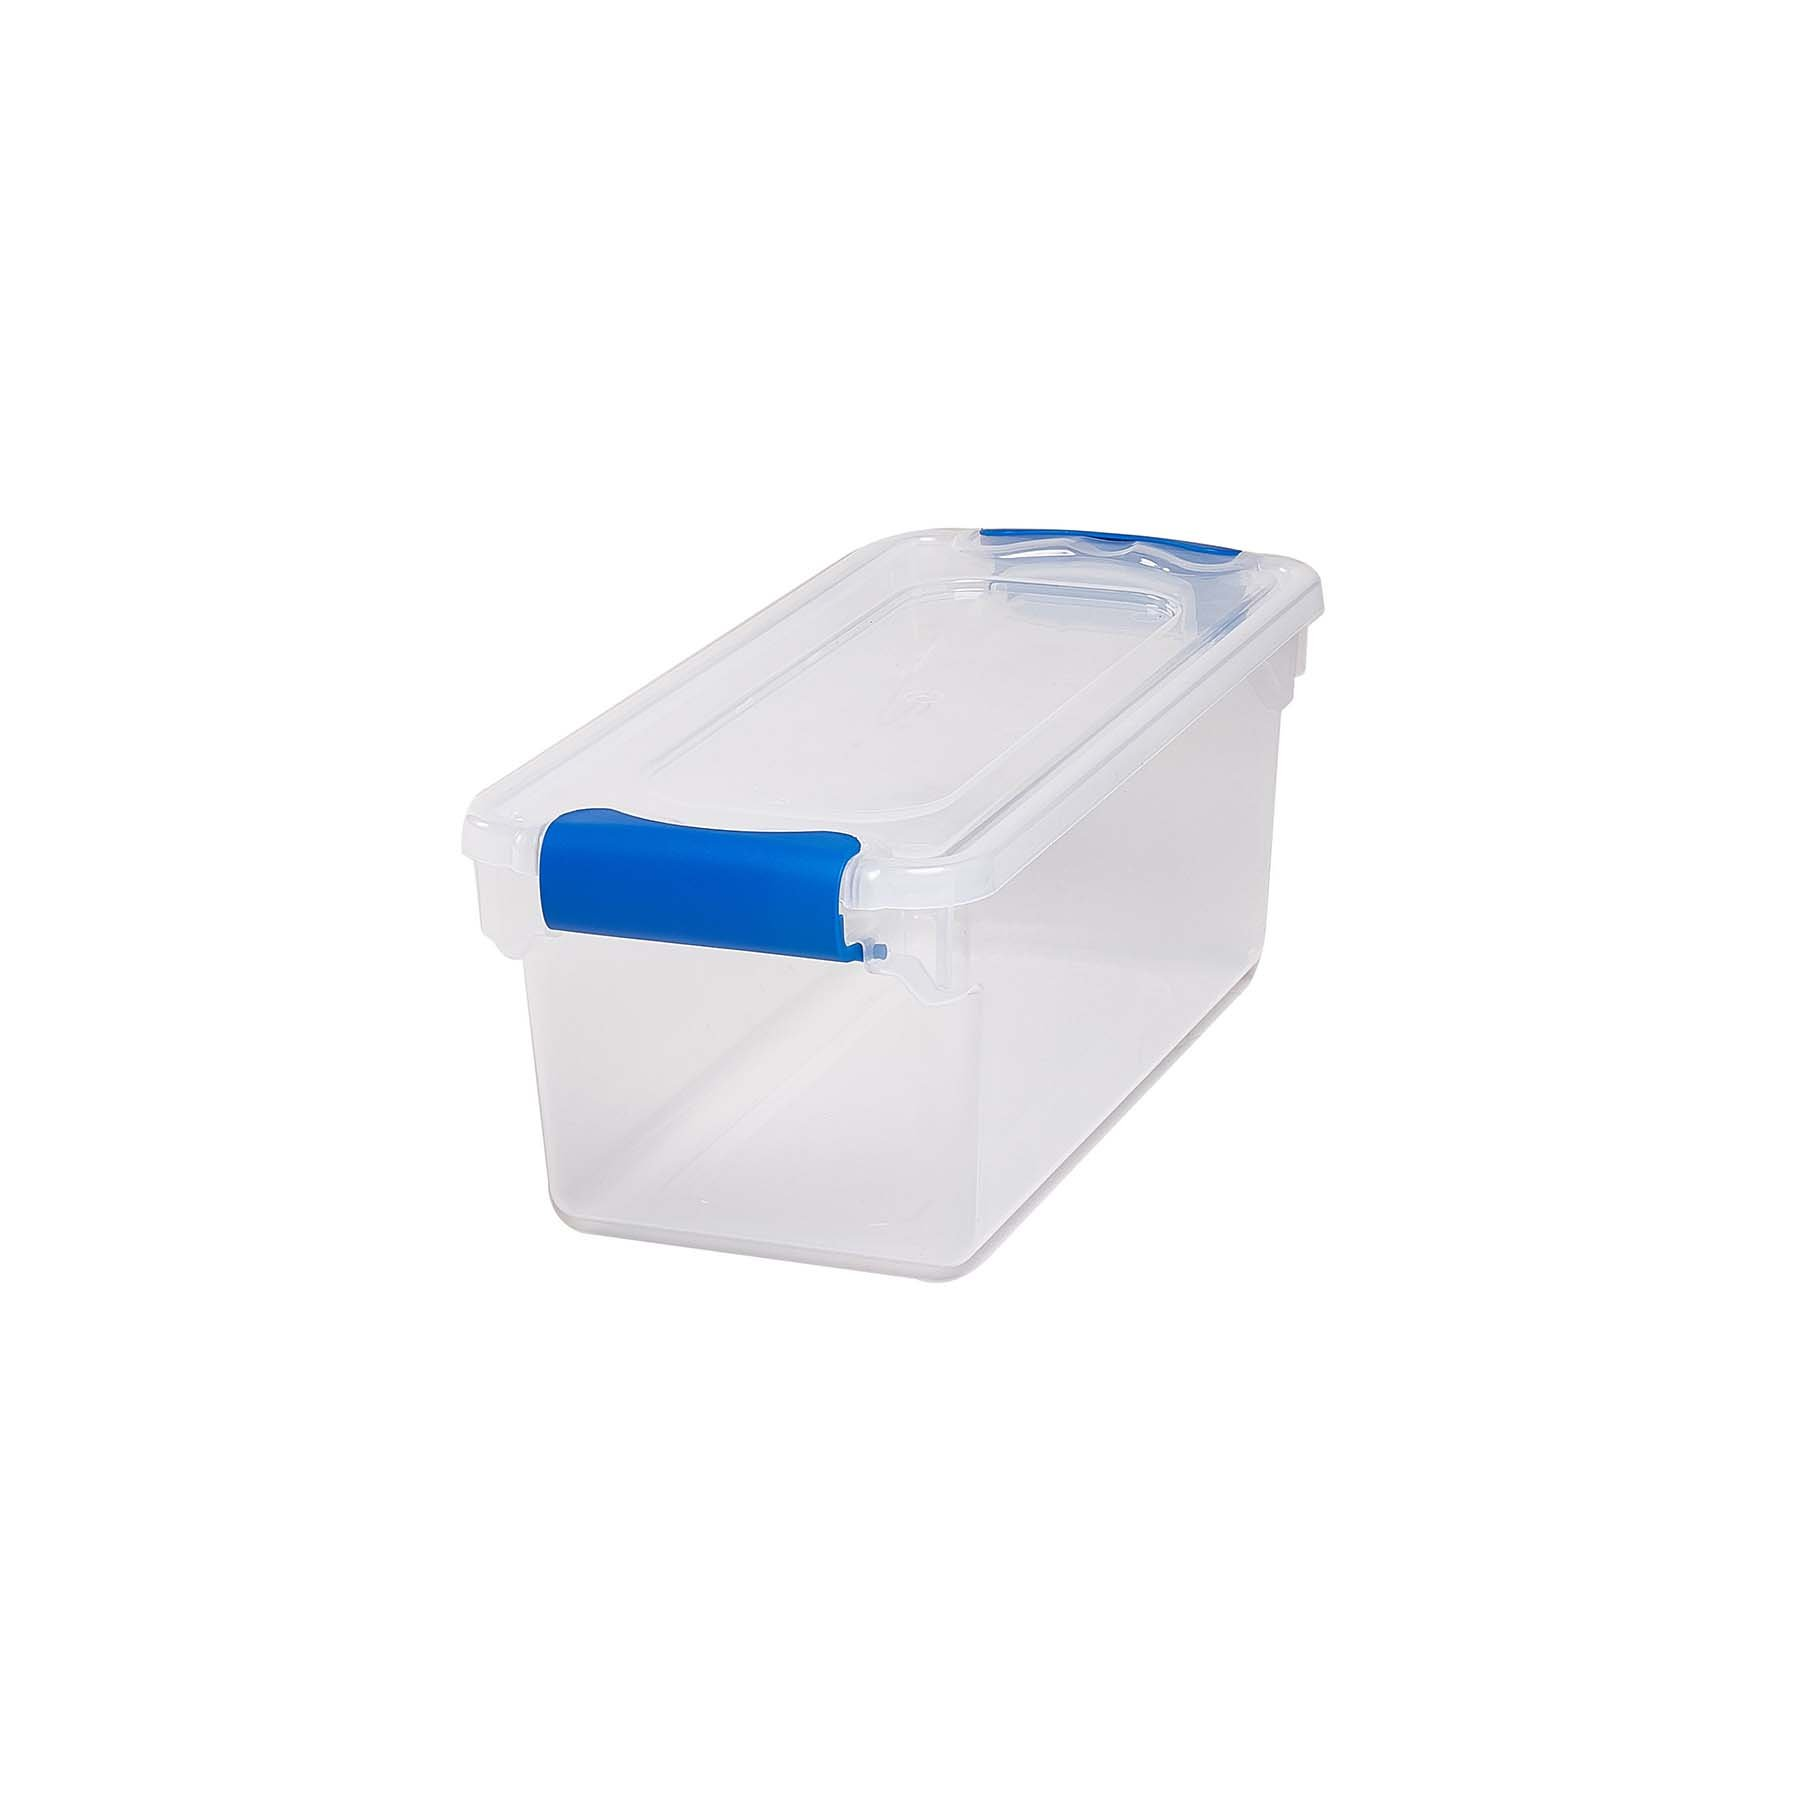 HOMZ 3410CLRDC.05 Plastic Storage, Modular Stackable Storage Bins with Blue Latching Handles, 7.5 Quart, Clear, 5-Pack